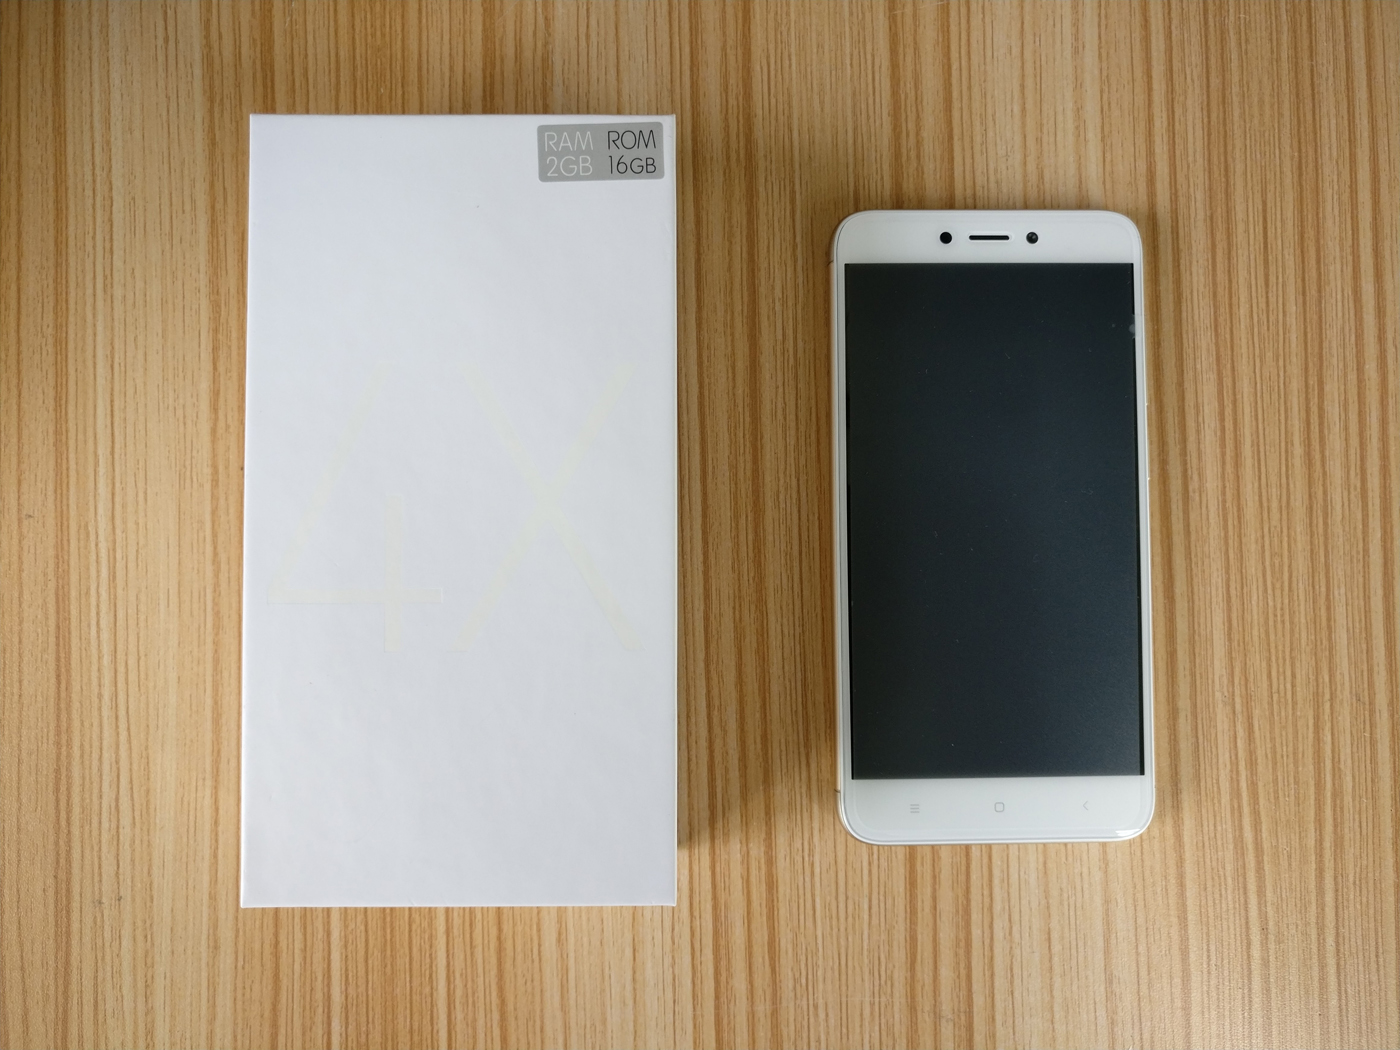 To2ccom Blog Xiaomi Redmi4x Real Life Images Unboxing Pictures Redmi 3s Pro 3 32 Gb Rom Global Gold The Details Of Being Photographed Colorchampagne Ram2gb Rom16gb